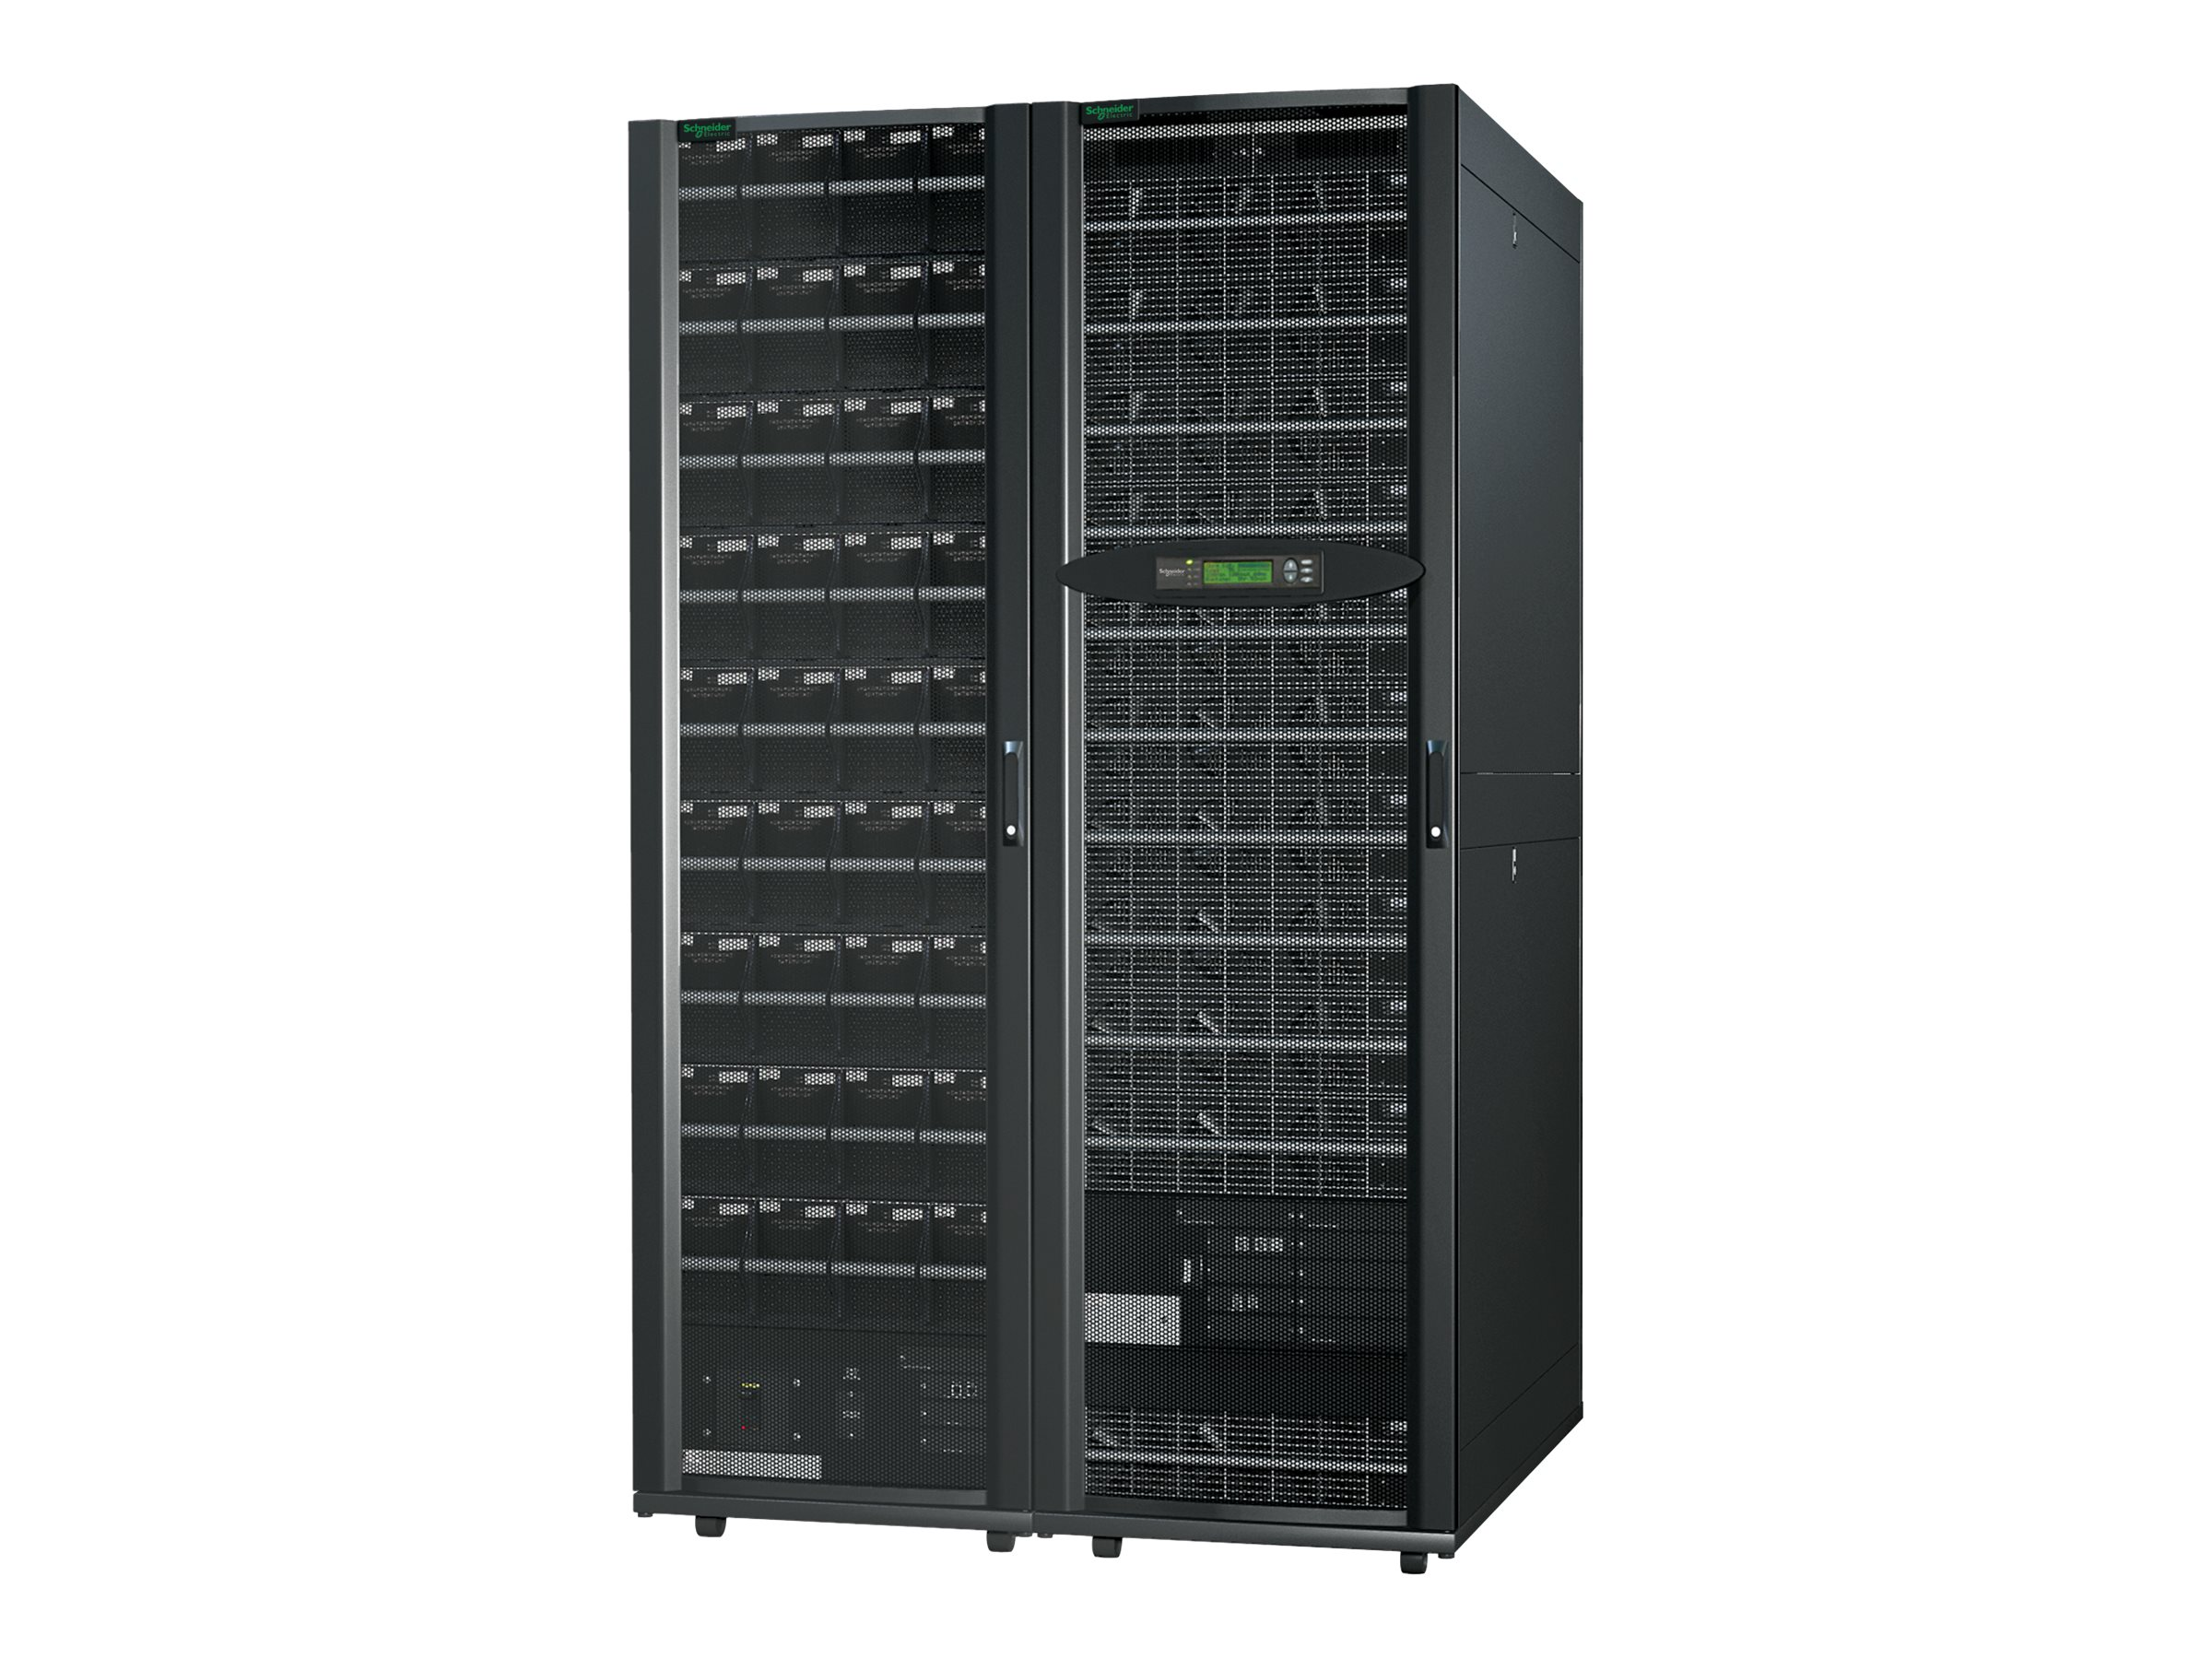 APC Symmetra PX 100kW Scalable to 100kW, 208V with Startup